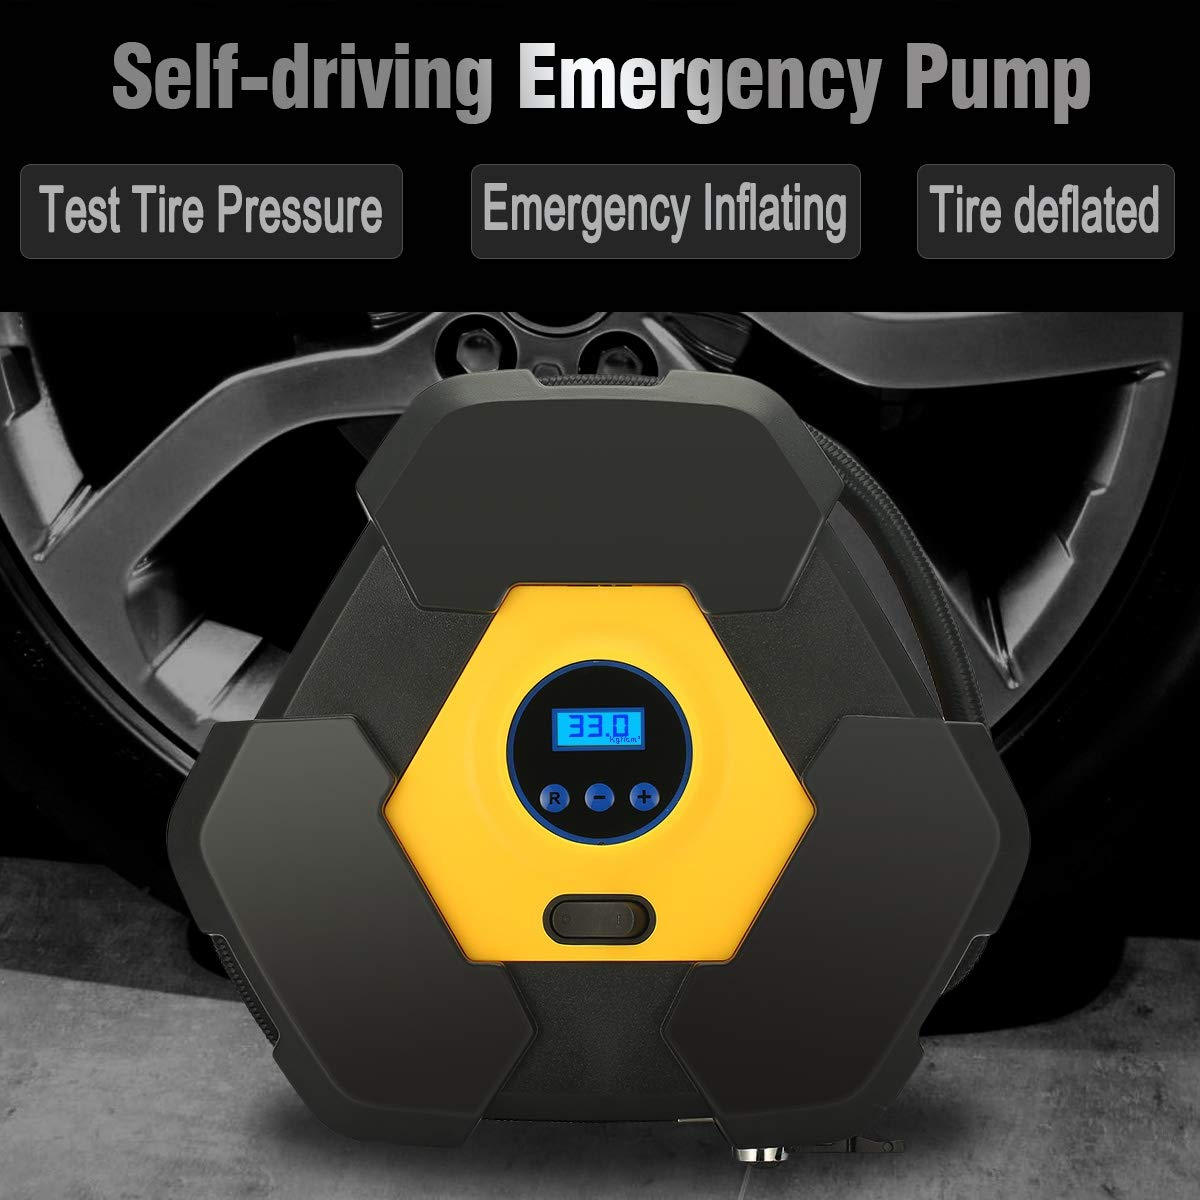 Amazon.com: Alctron Portable Air Compressor Pump 150PSI 12V Digital Tire Inflator for Cars Bikes Motorcycles and Other Inflatables, Built in LED Light: ...